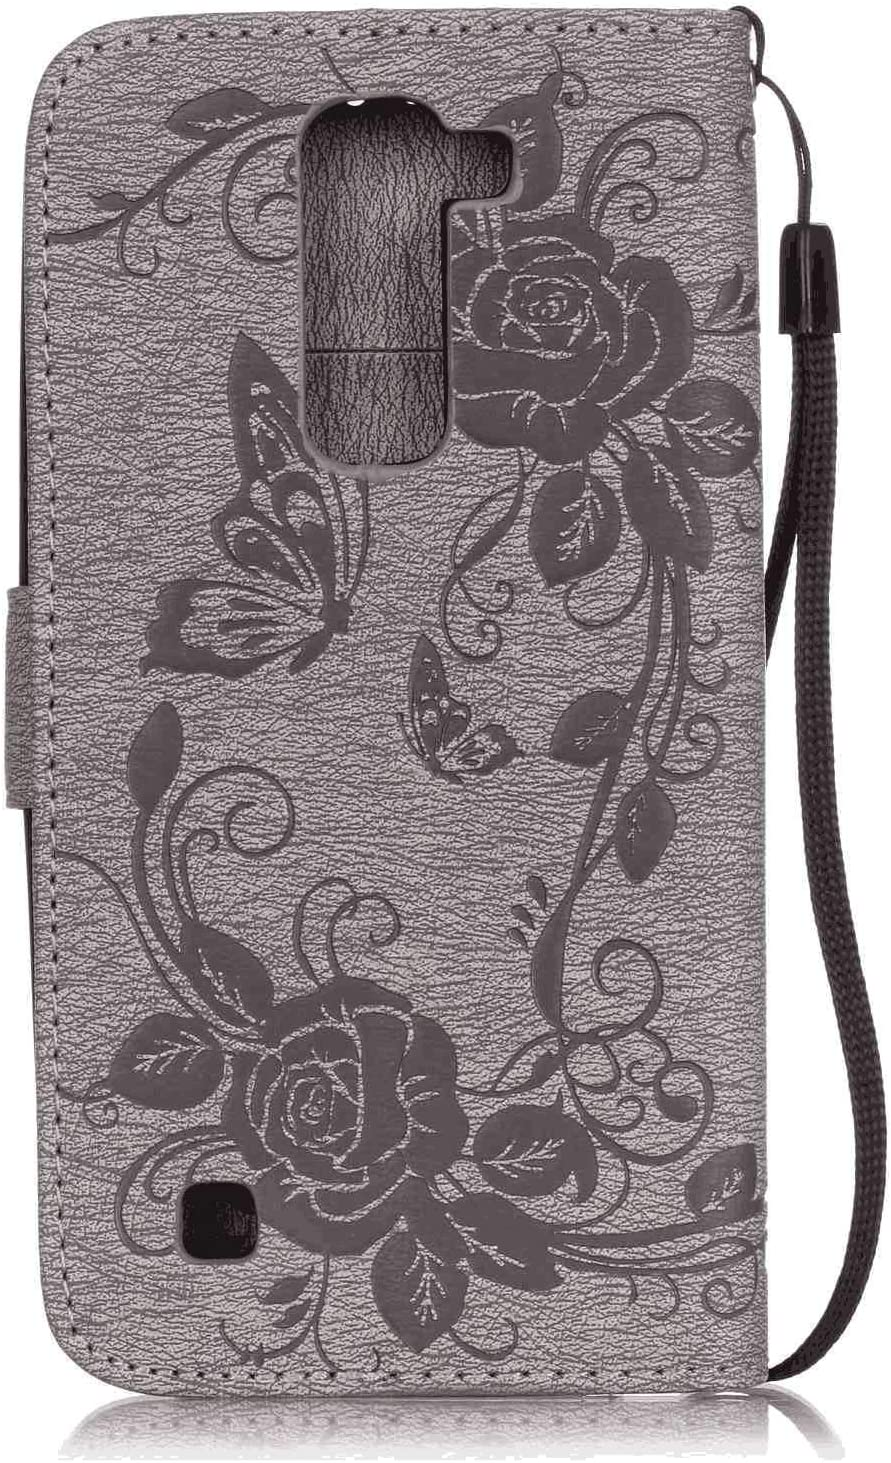 WiseLSwim Leather Flip Case for Samsung Galaxy Note8 Business Gifts Wallet Cover Compatible with Samsung Galaxy Note8 with Universal Underwater Waterproof Case